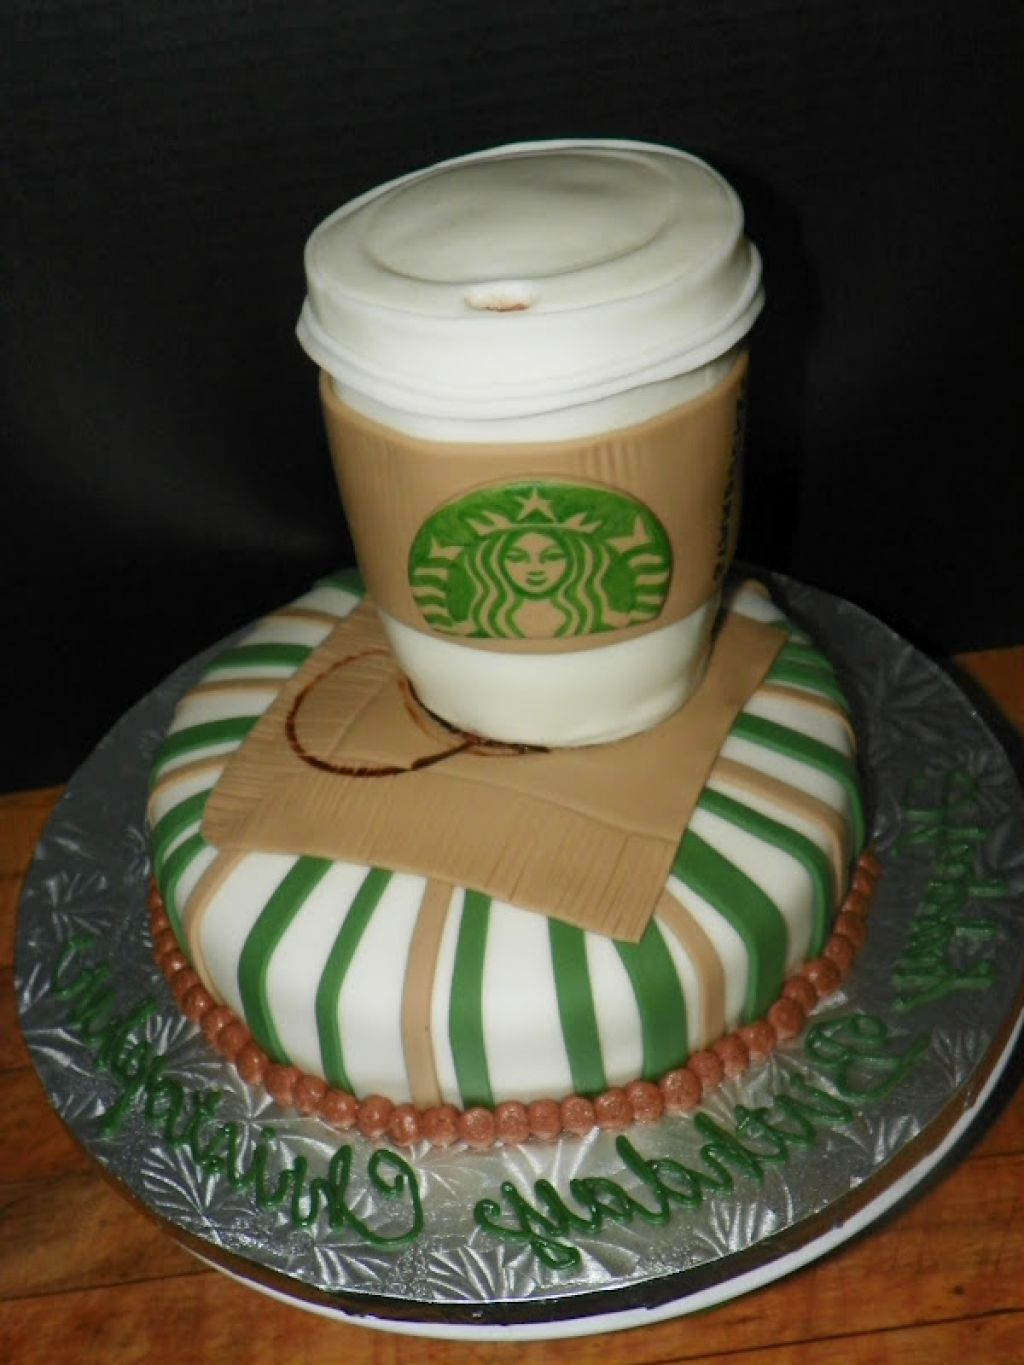 Starbucks Birthday Cake Let them eat cake Pinterest Starbucks